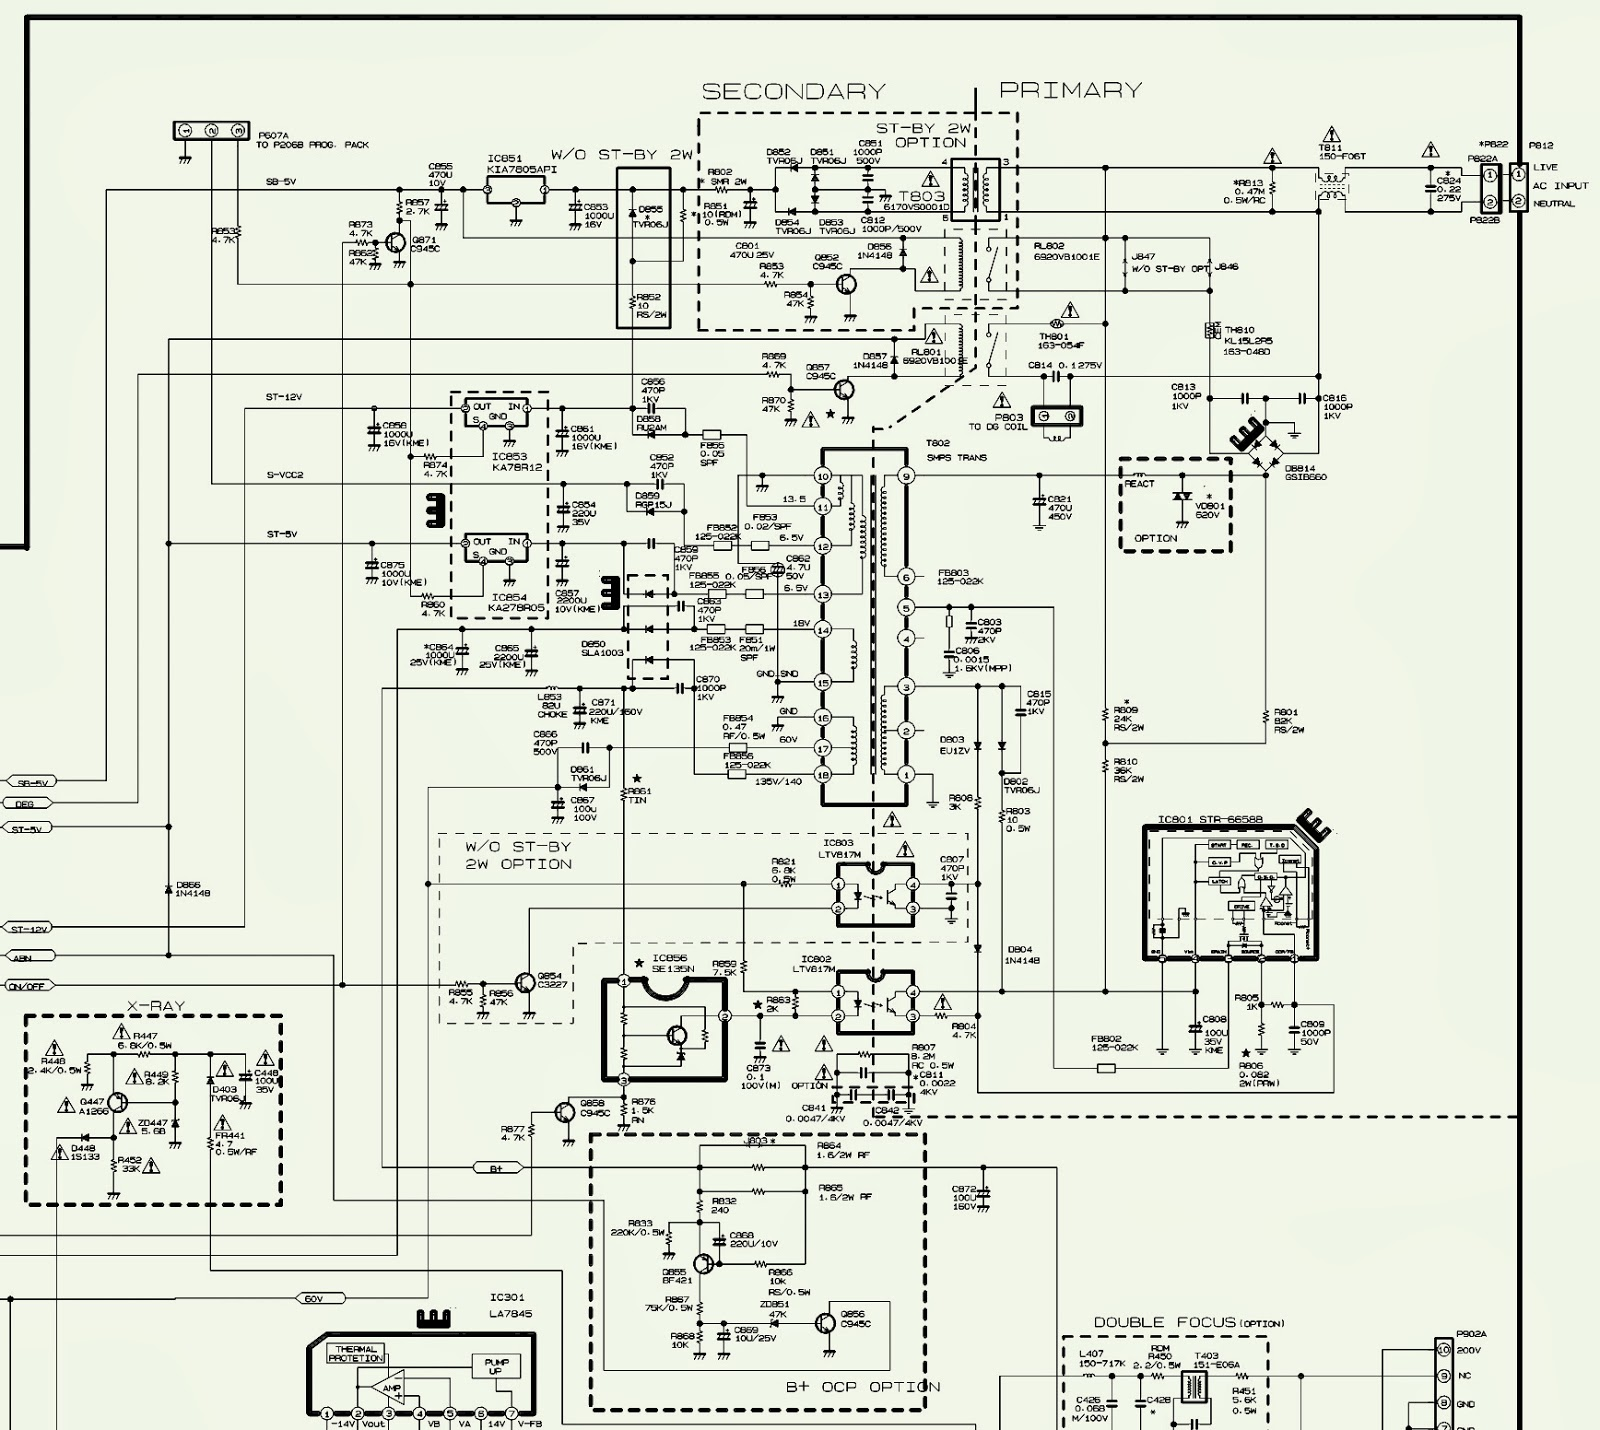 medium resolution of wiring diagram lg tv wiring diagrams microwave components diagram lg tv connection diagram wiring diagram todays